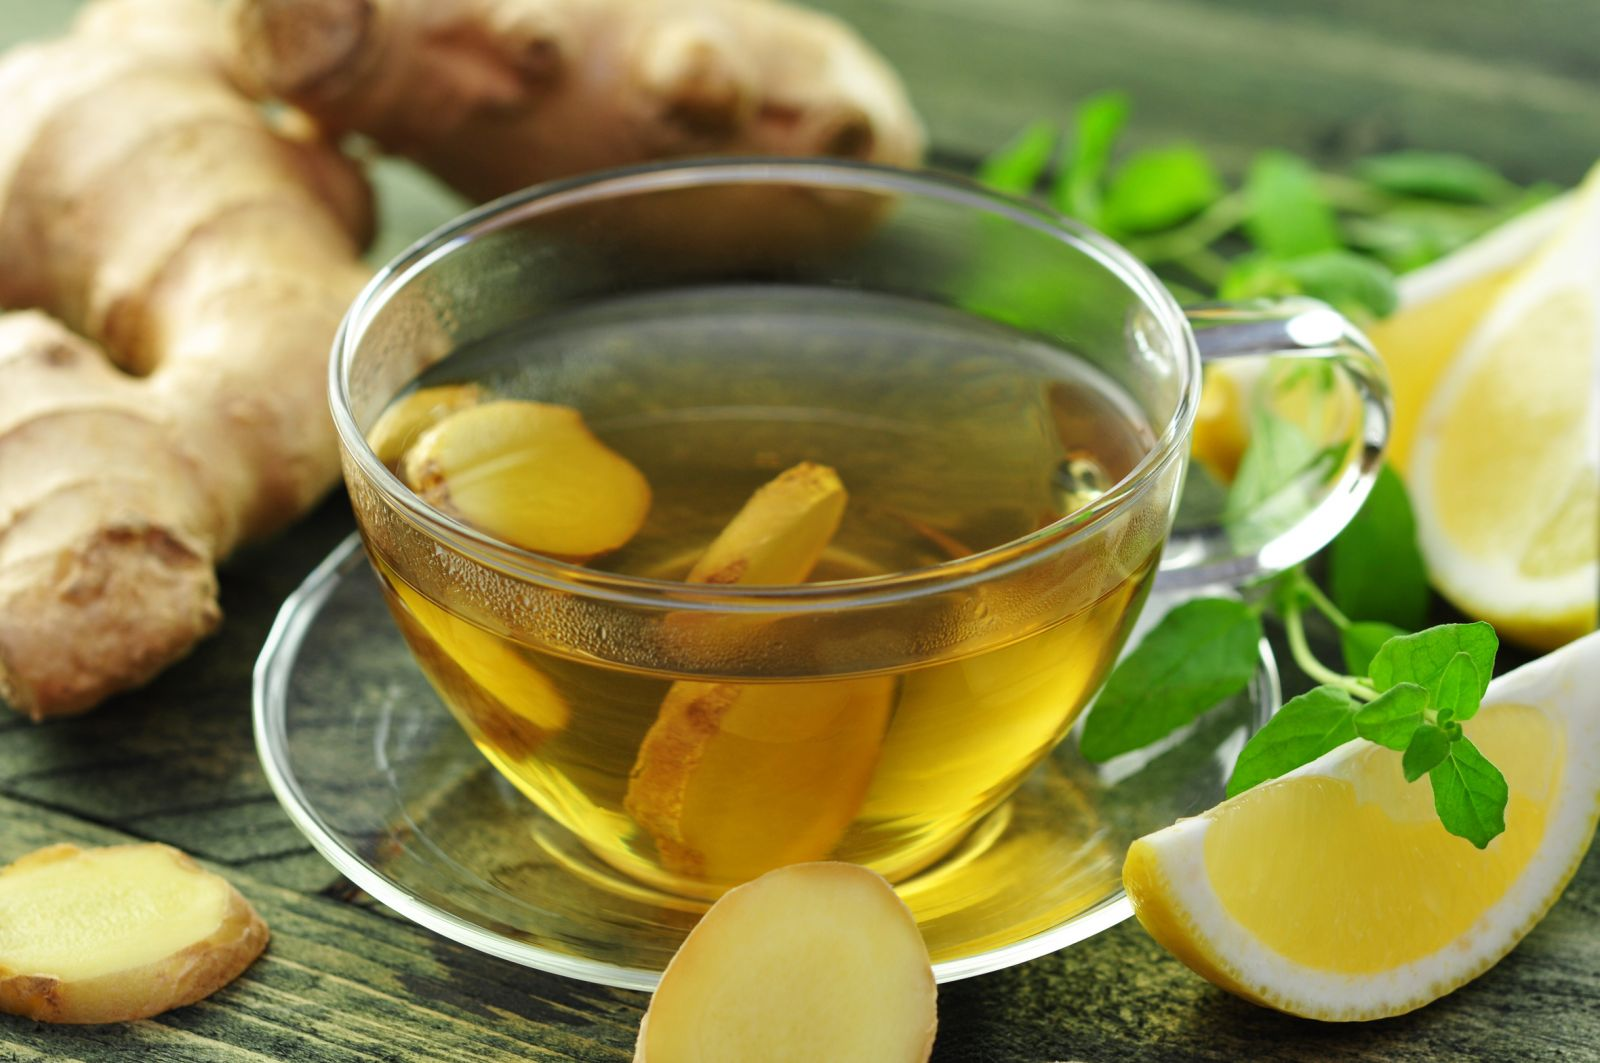 Best Slimming Teas For Weight Loss